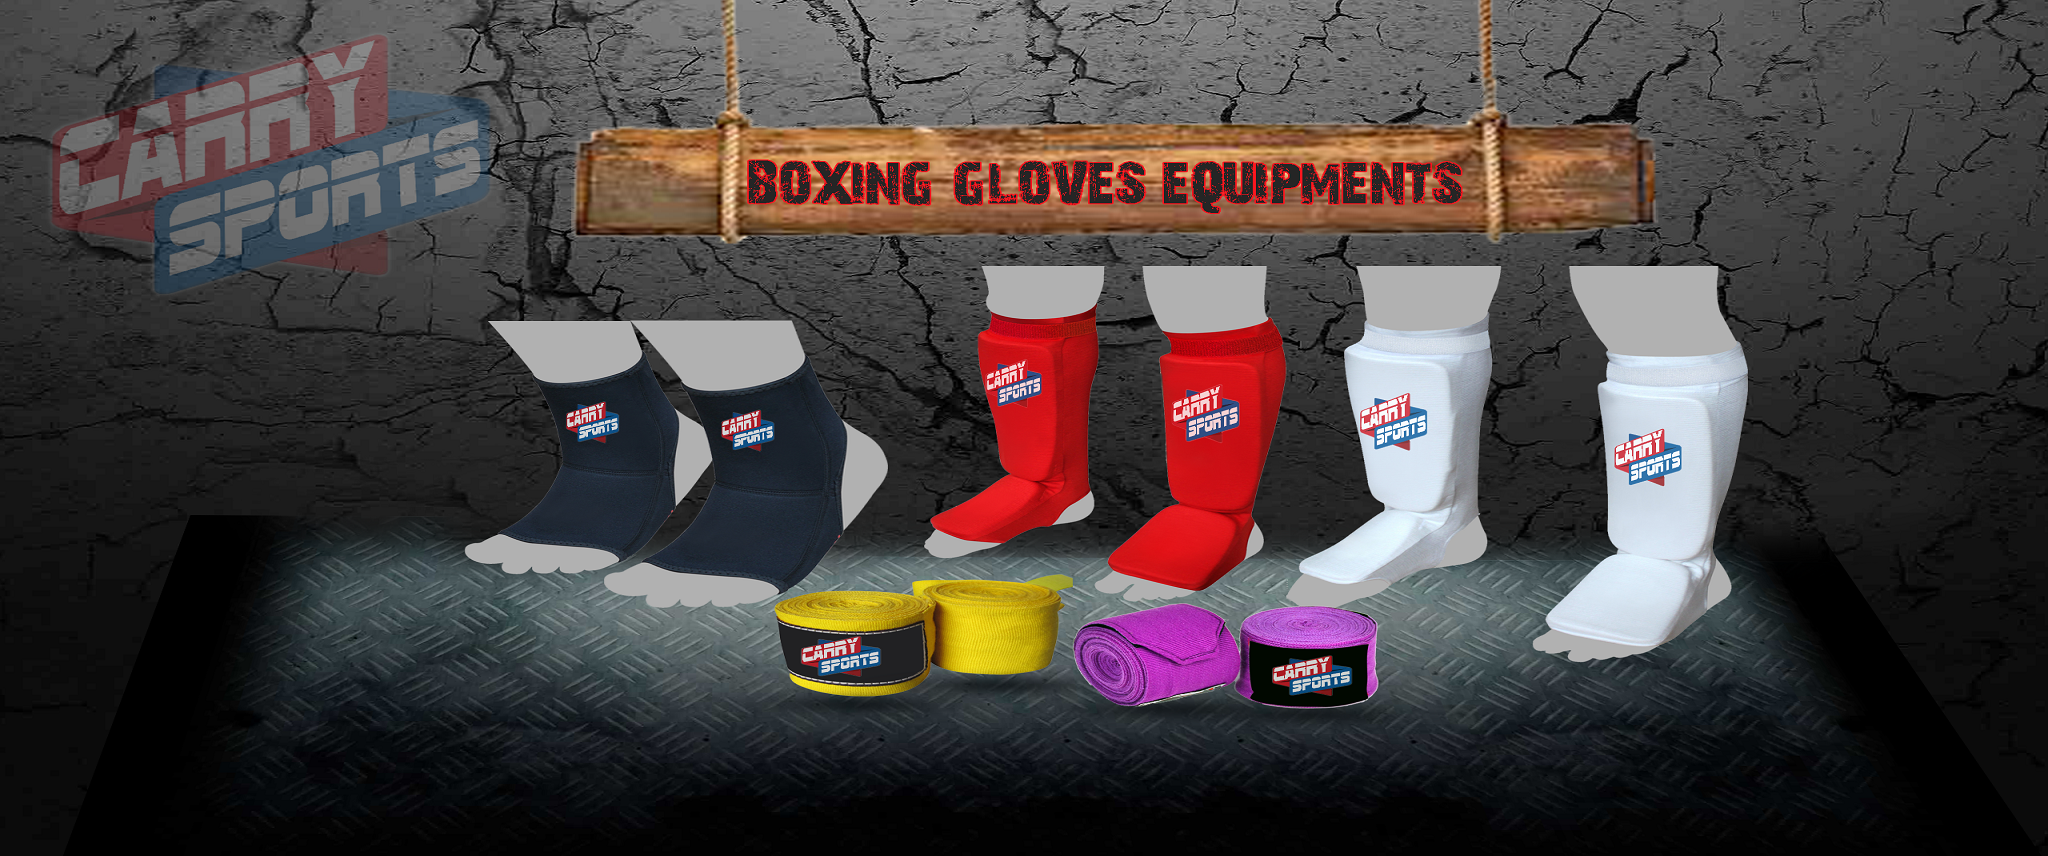 Boxing Gloves Equipments in USA-Europe